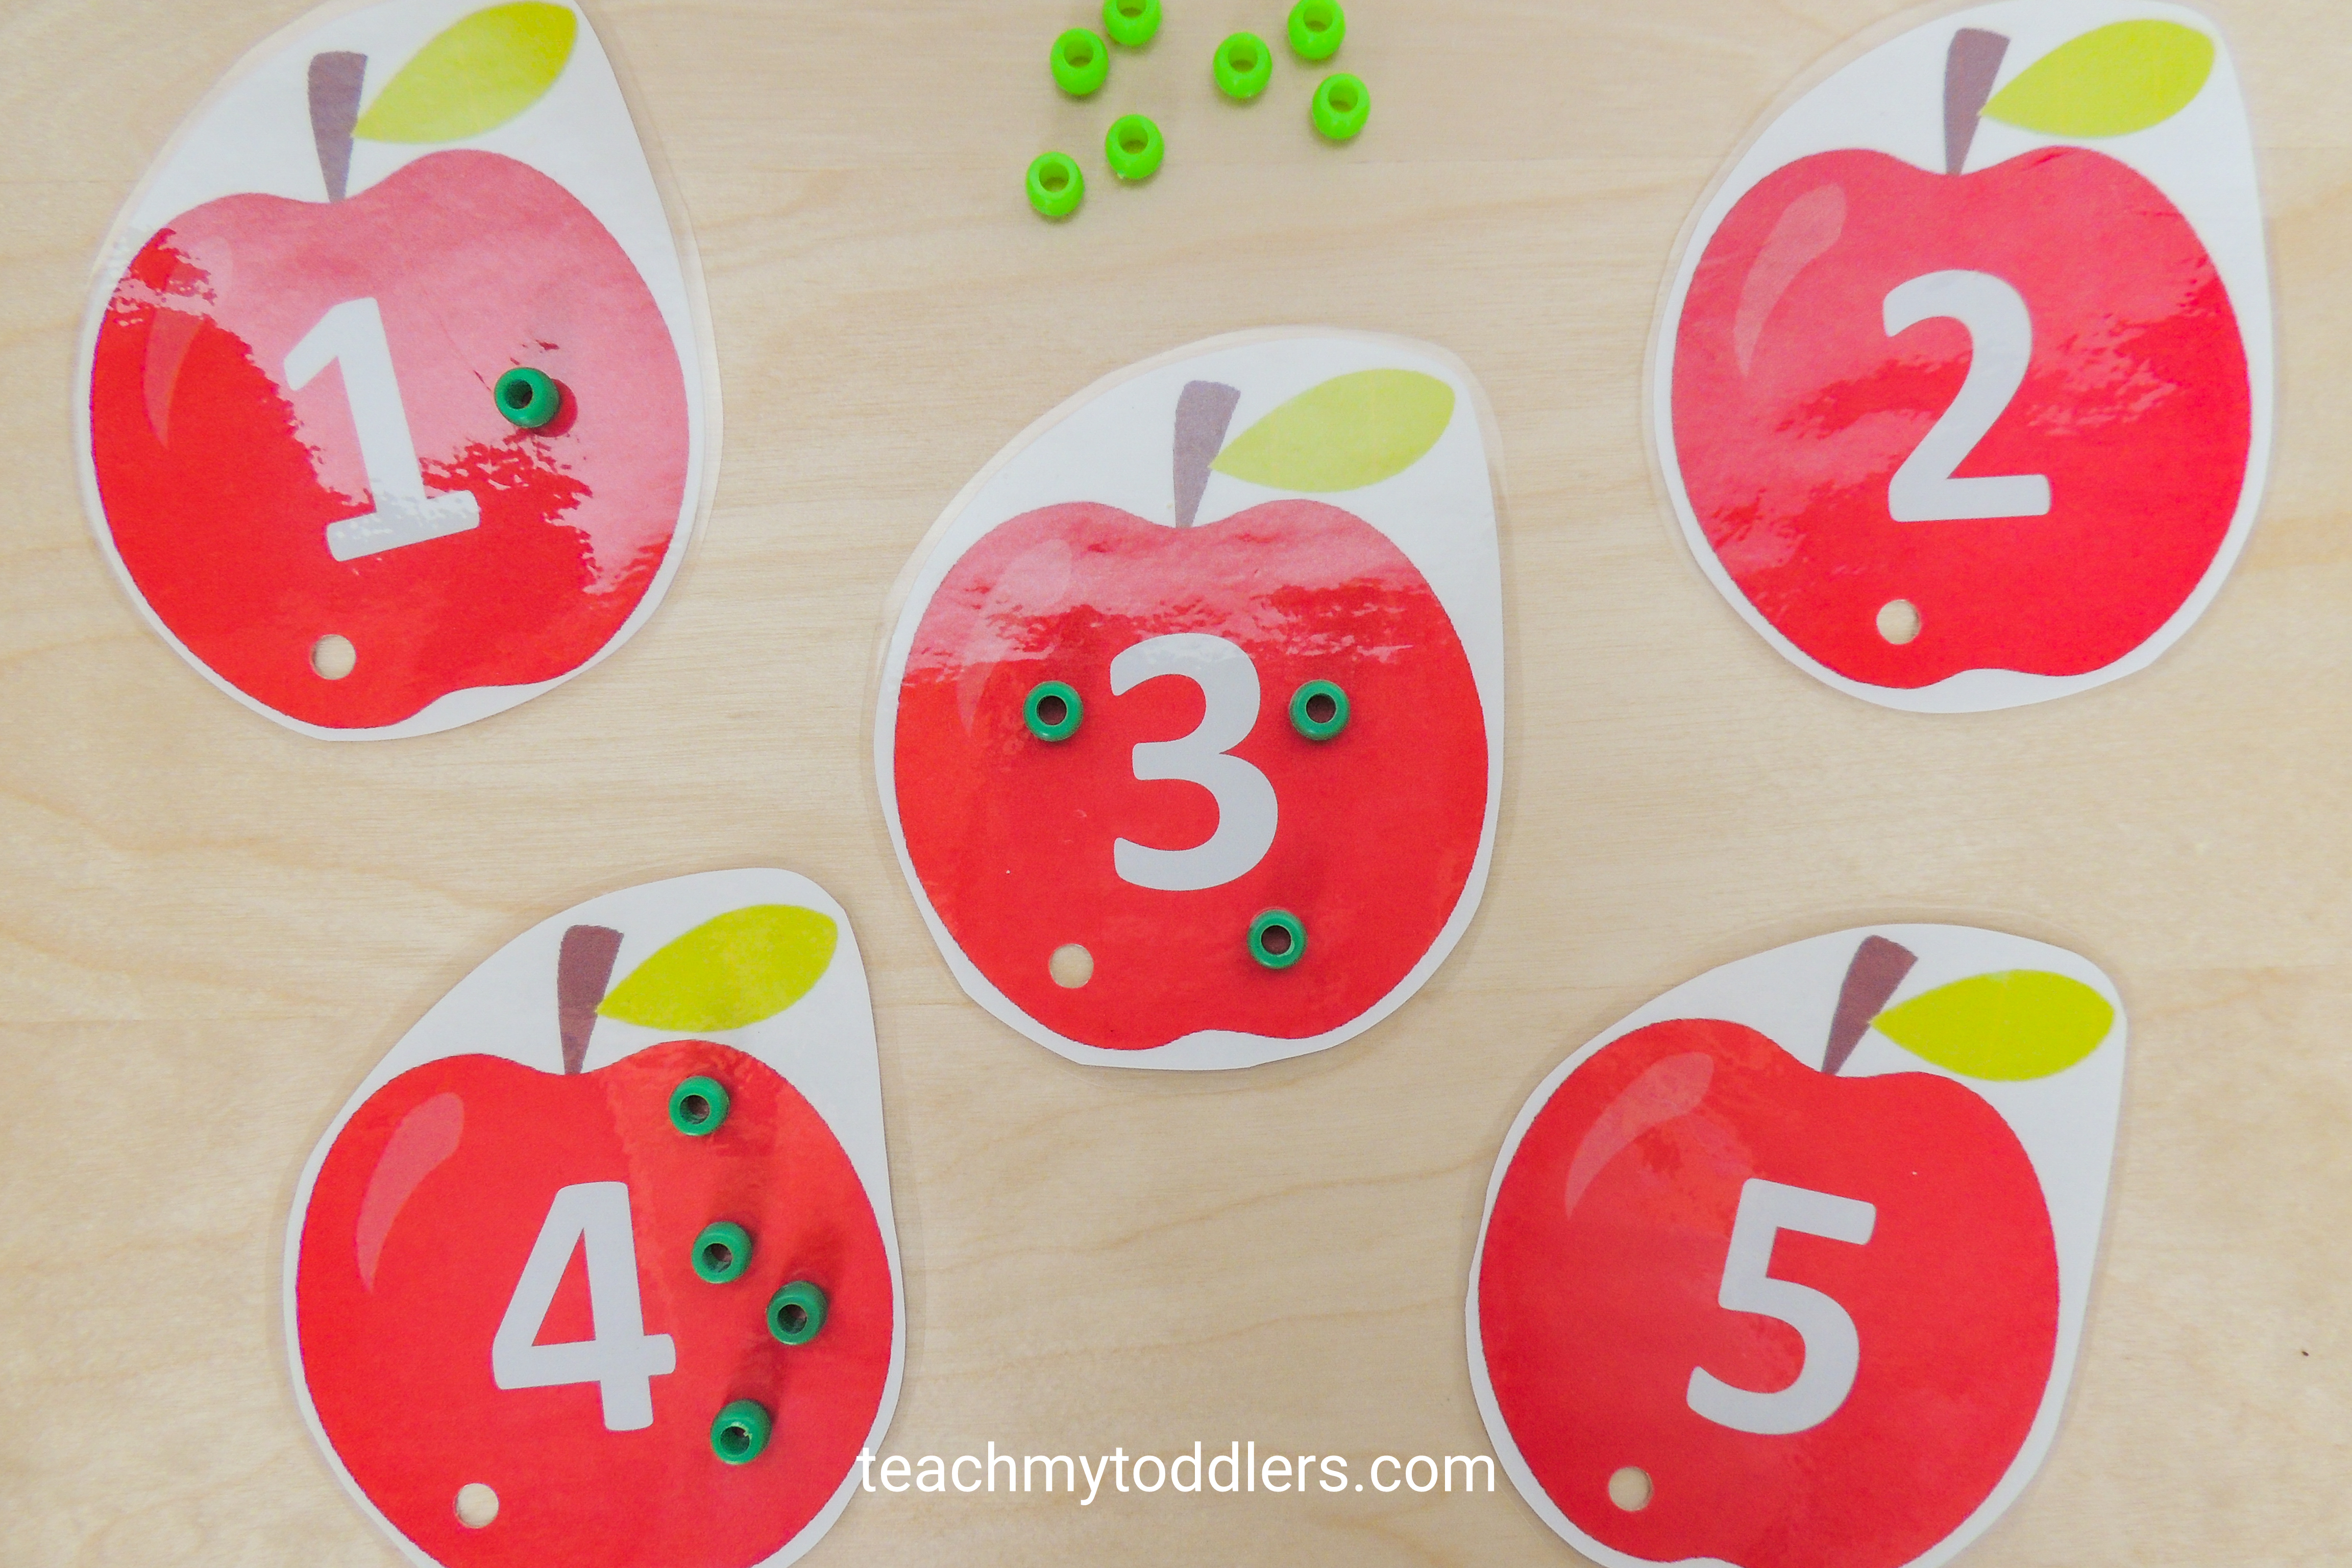 Use these fun clip cards to teach your toddlers numbers